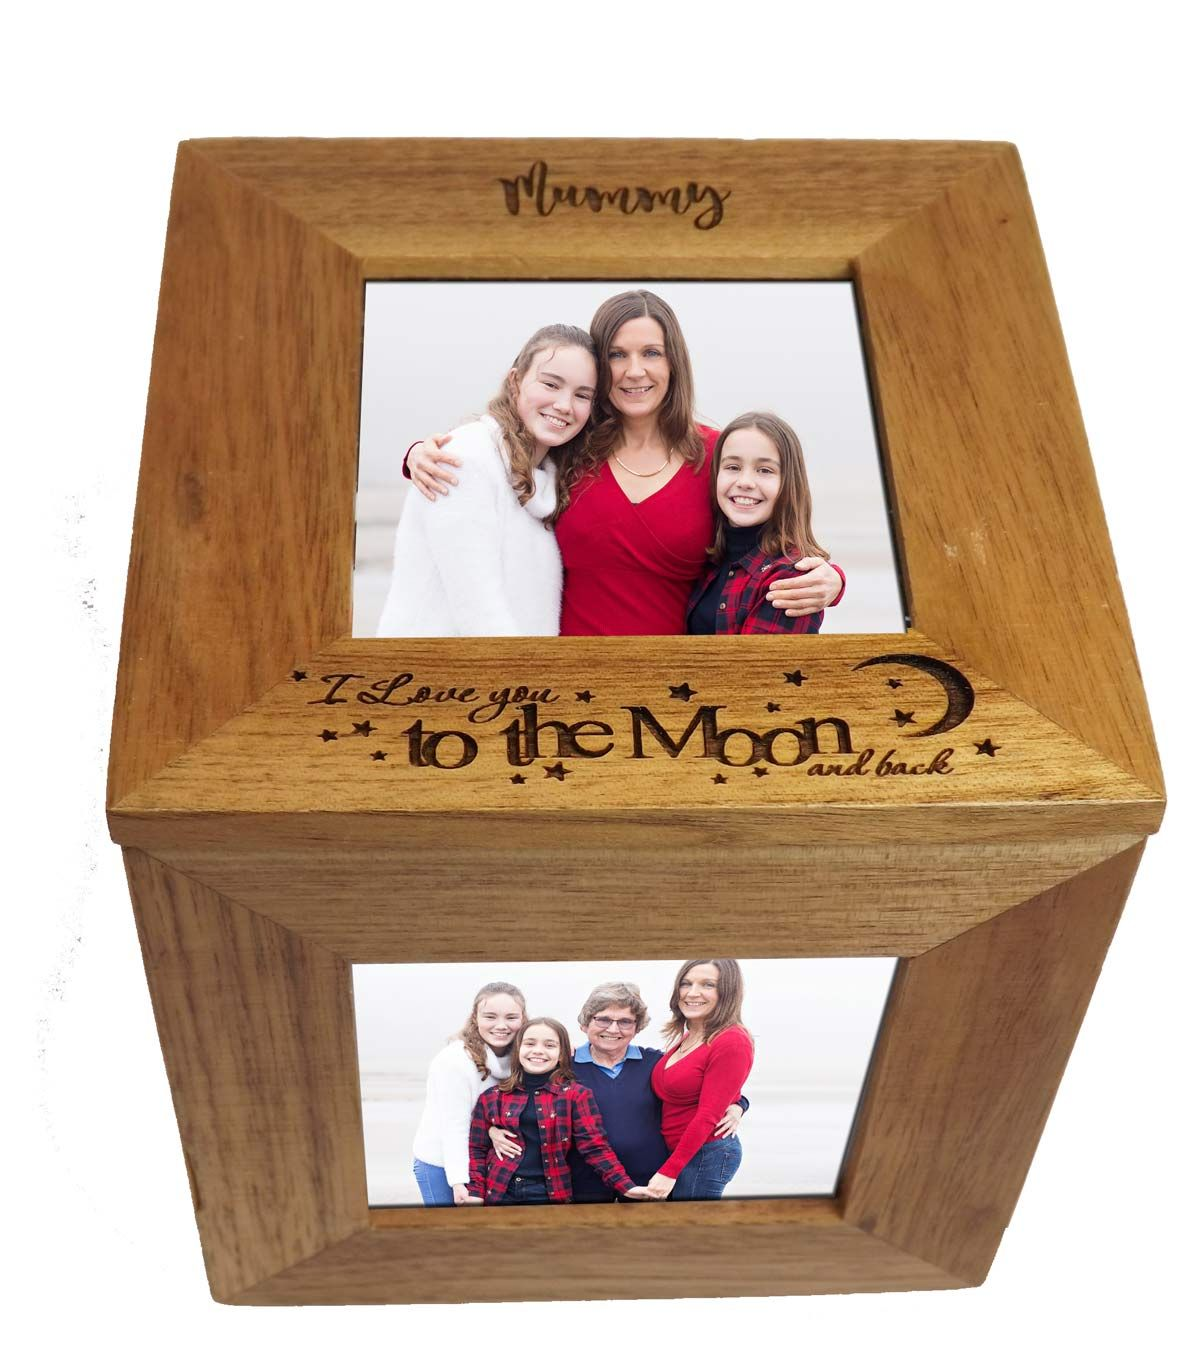 Oak Wood Photo Cube - A beautiful Mother's Day gift and keepsake